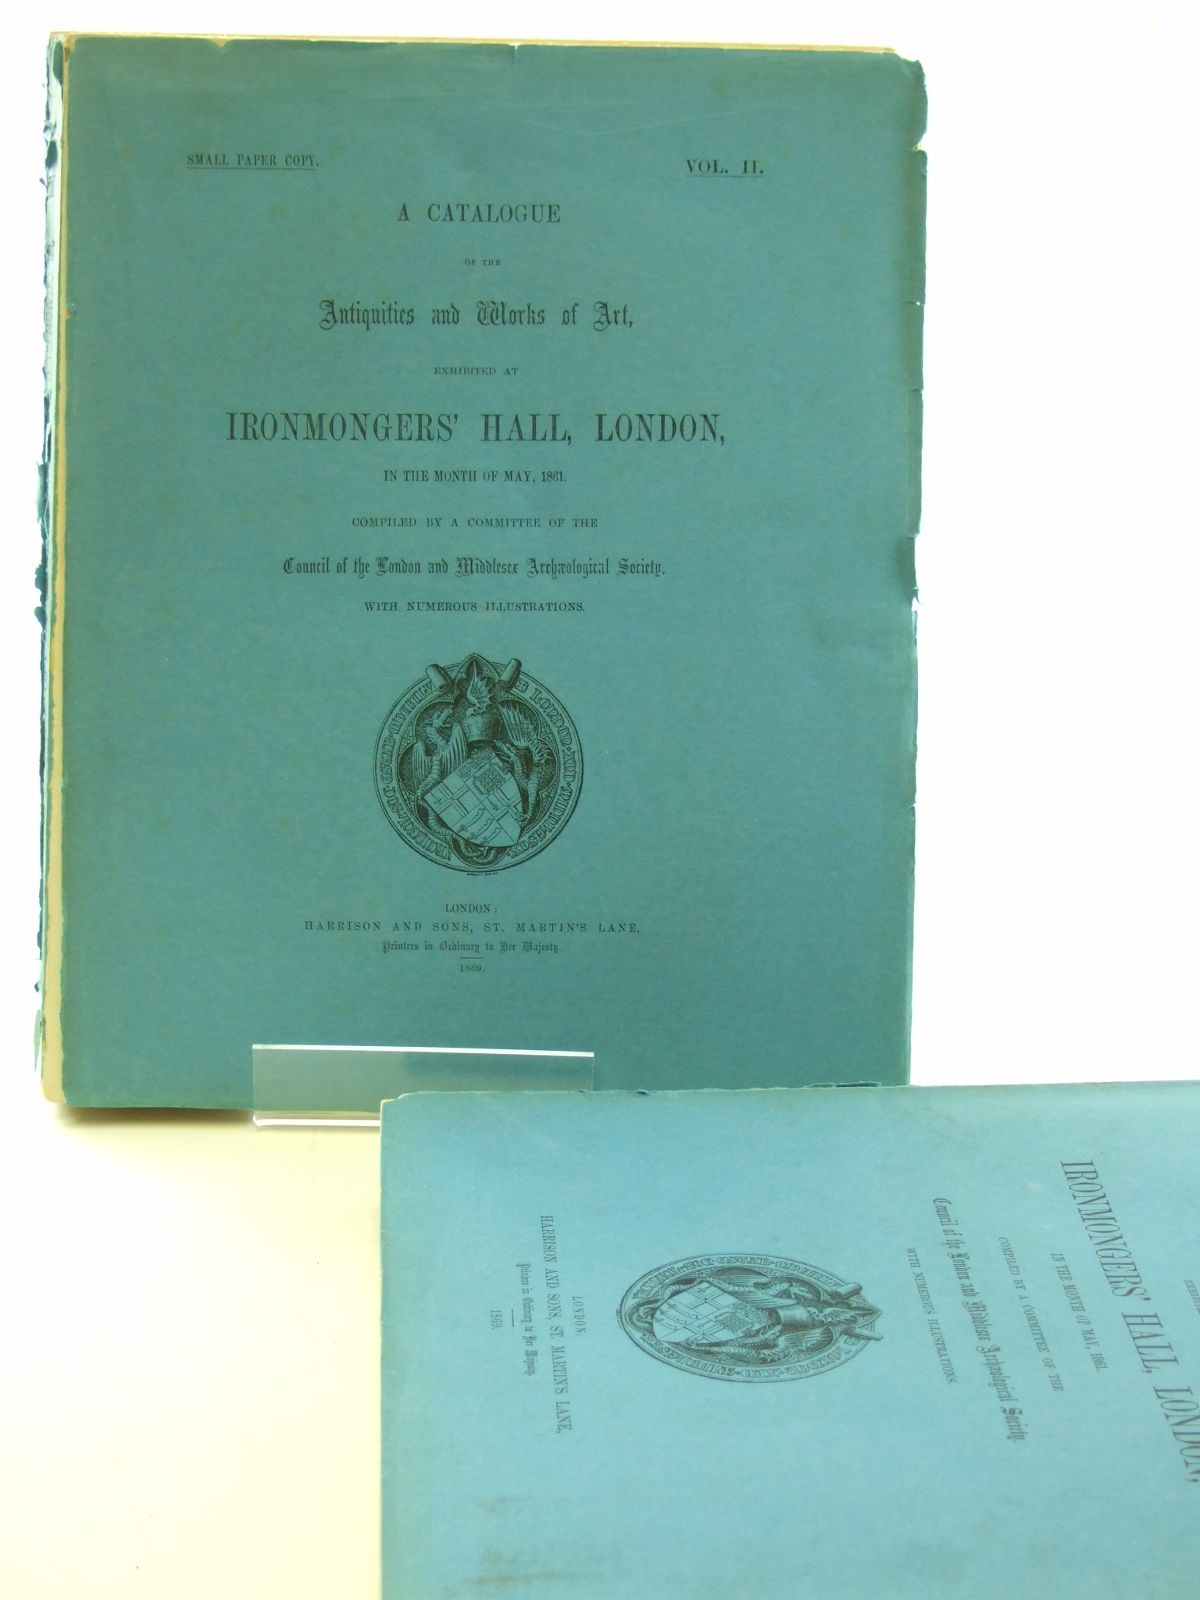 Photo of A CATALOGUE OF THE ANTIQUITIES AND WORKS OF ART EXHIBITED AT IRONMONGERS HALL LONDON published by Harrison & Sons (STOCK CODE: 1207414)  for sale by Stella & Rose's Books